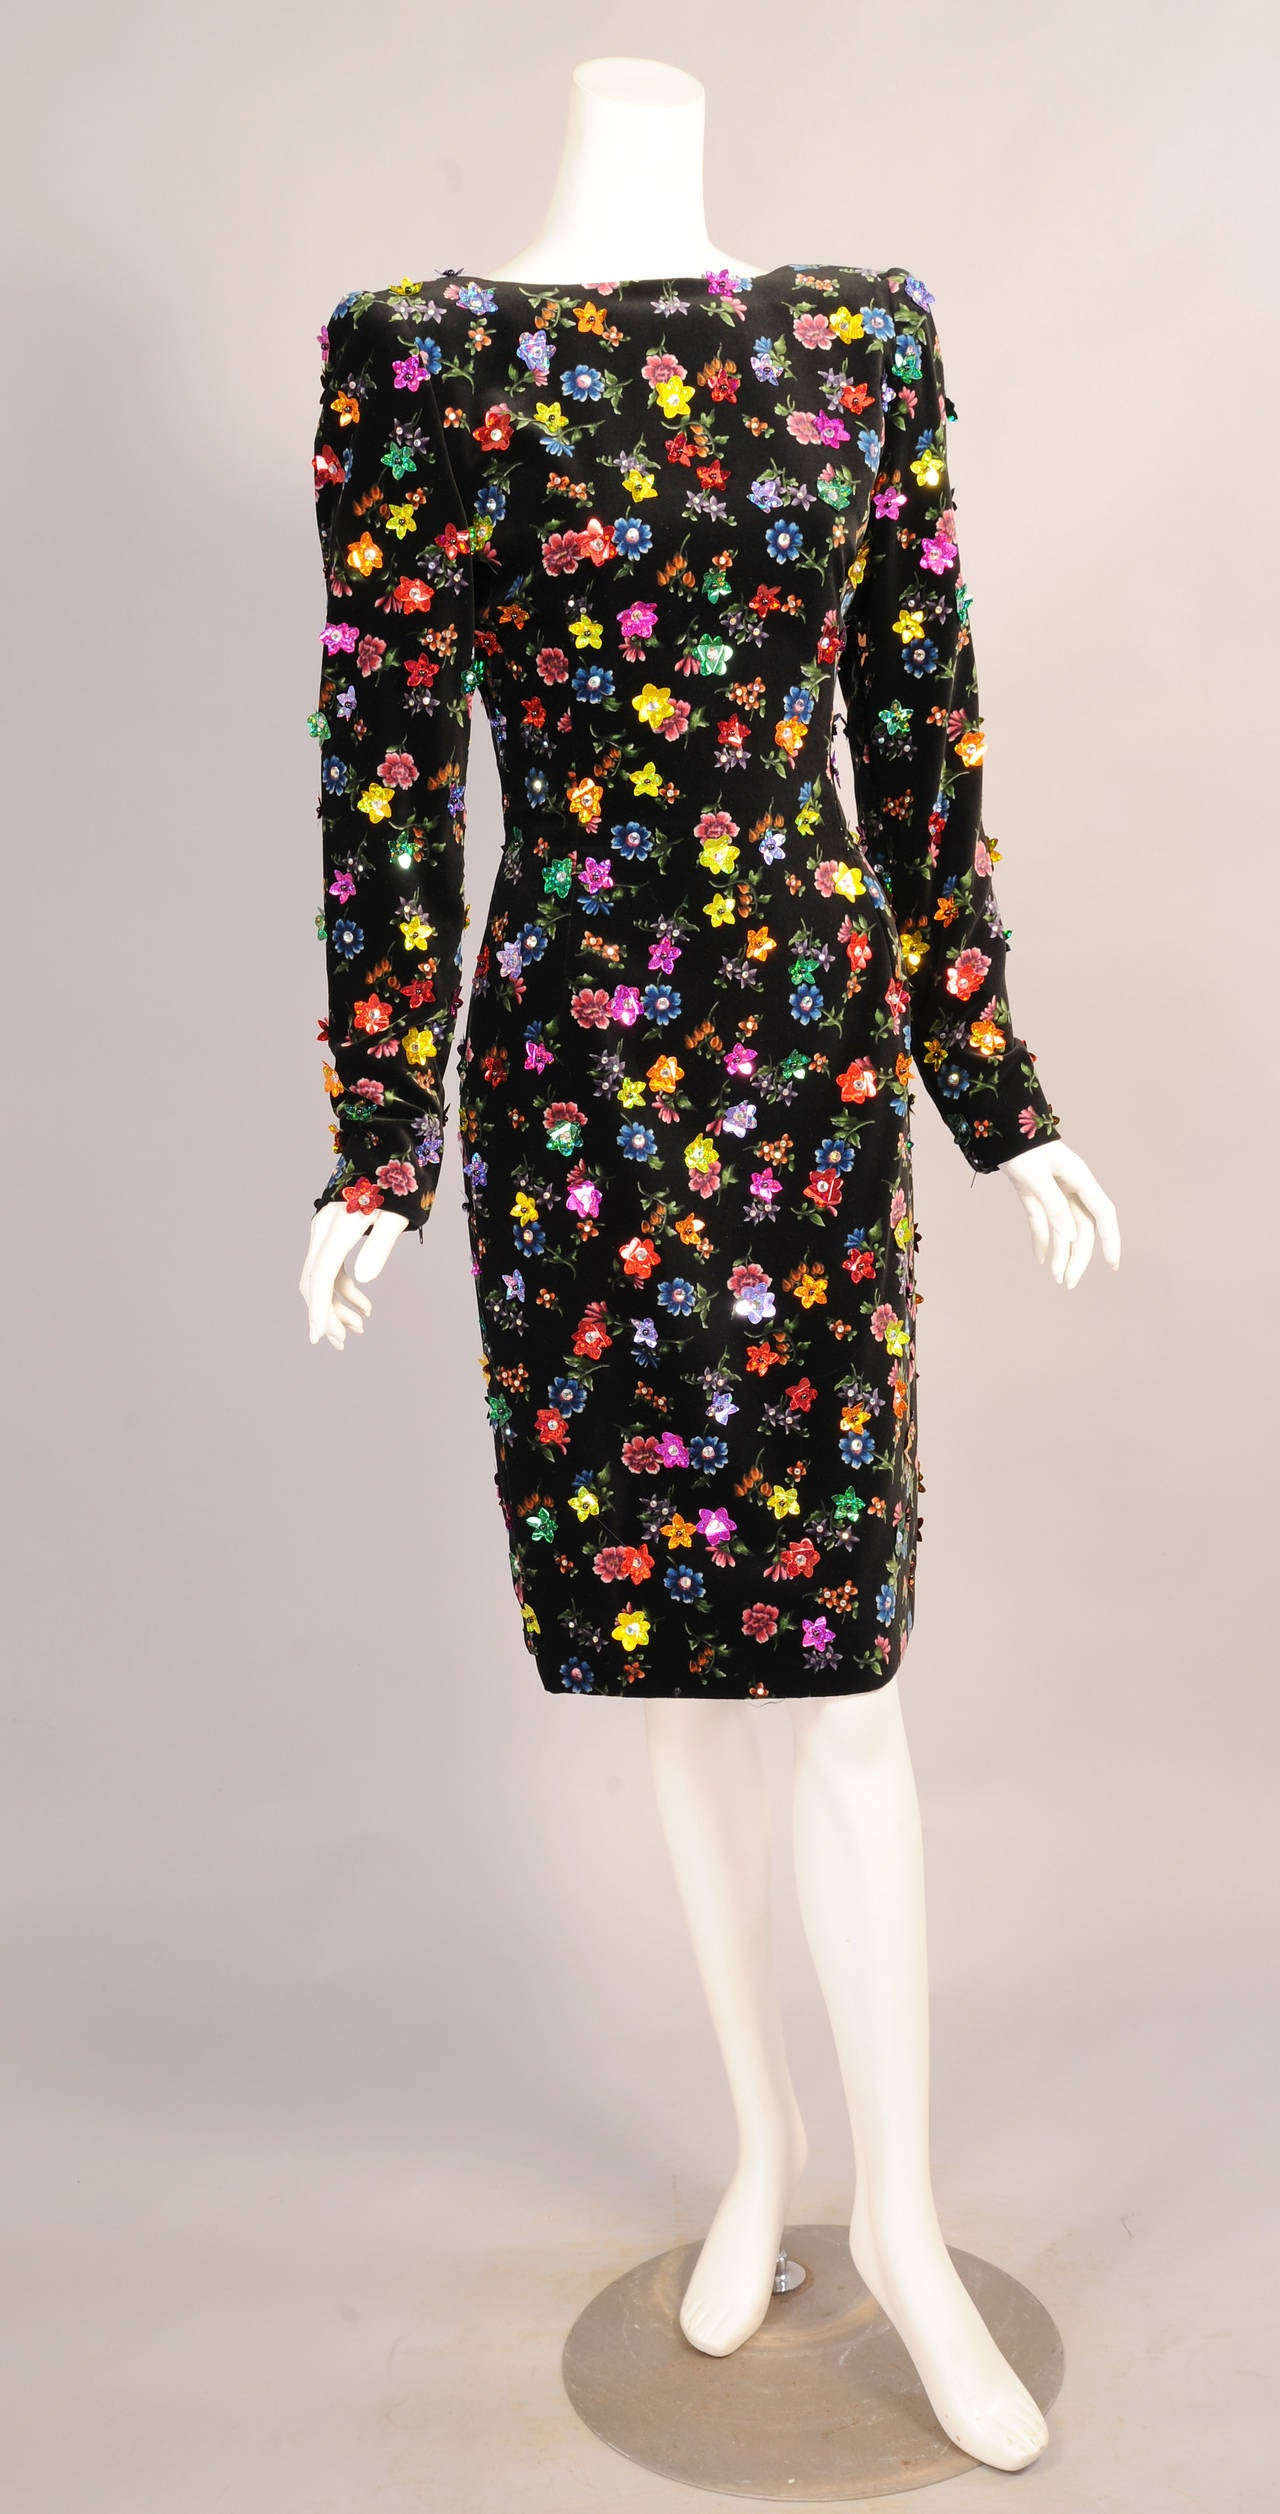 Givenchy Haute Couture Beaded & Printed Floral Velvet Dress, Low Back 2